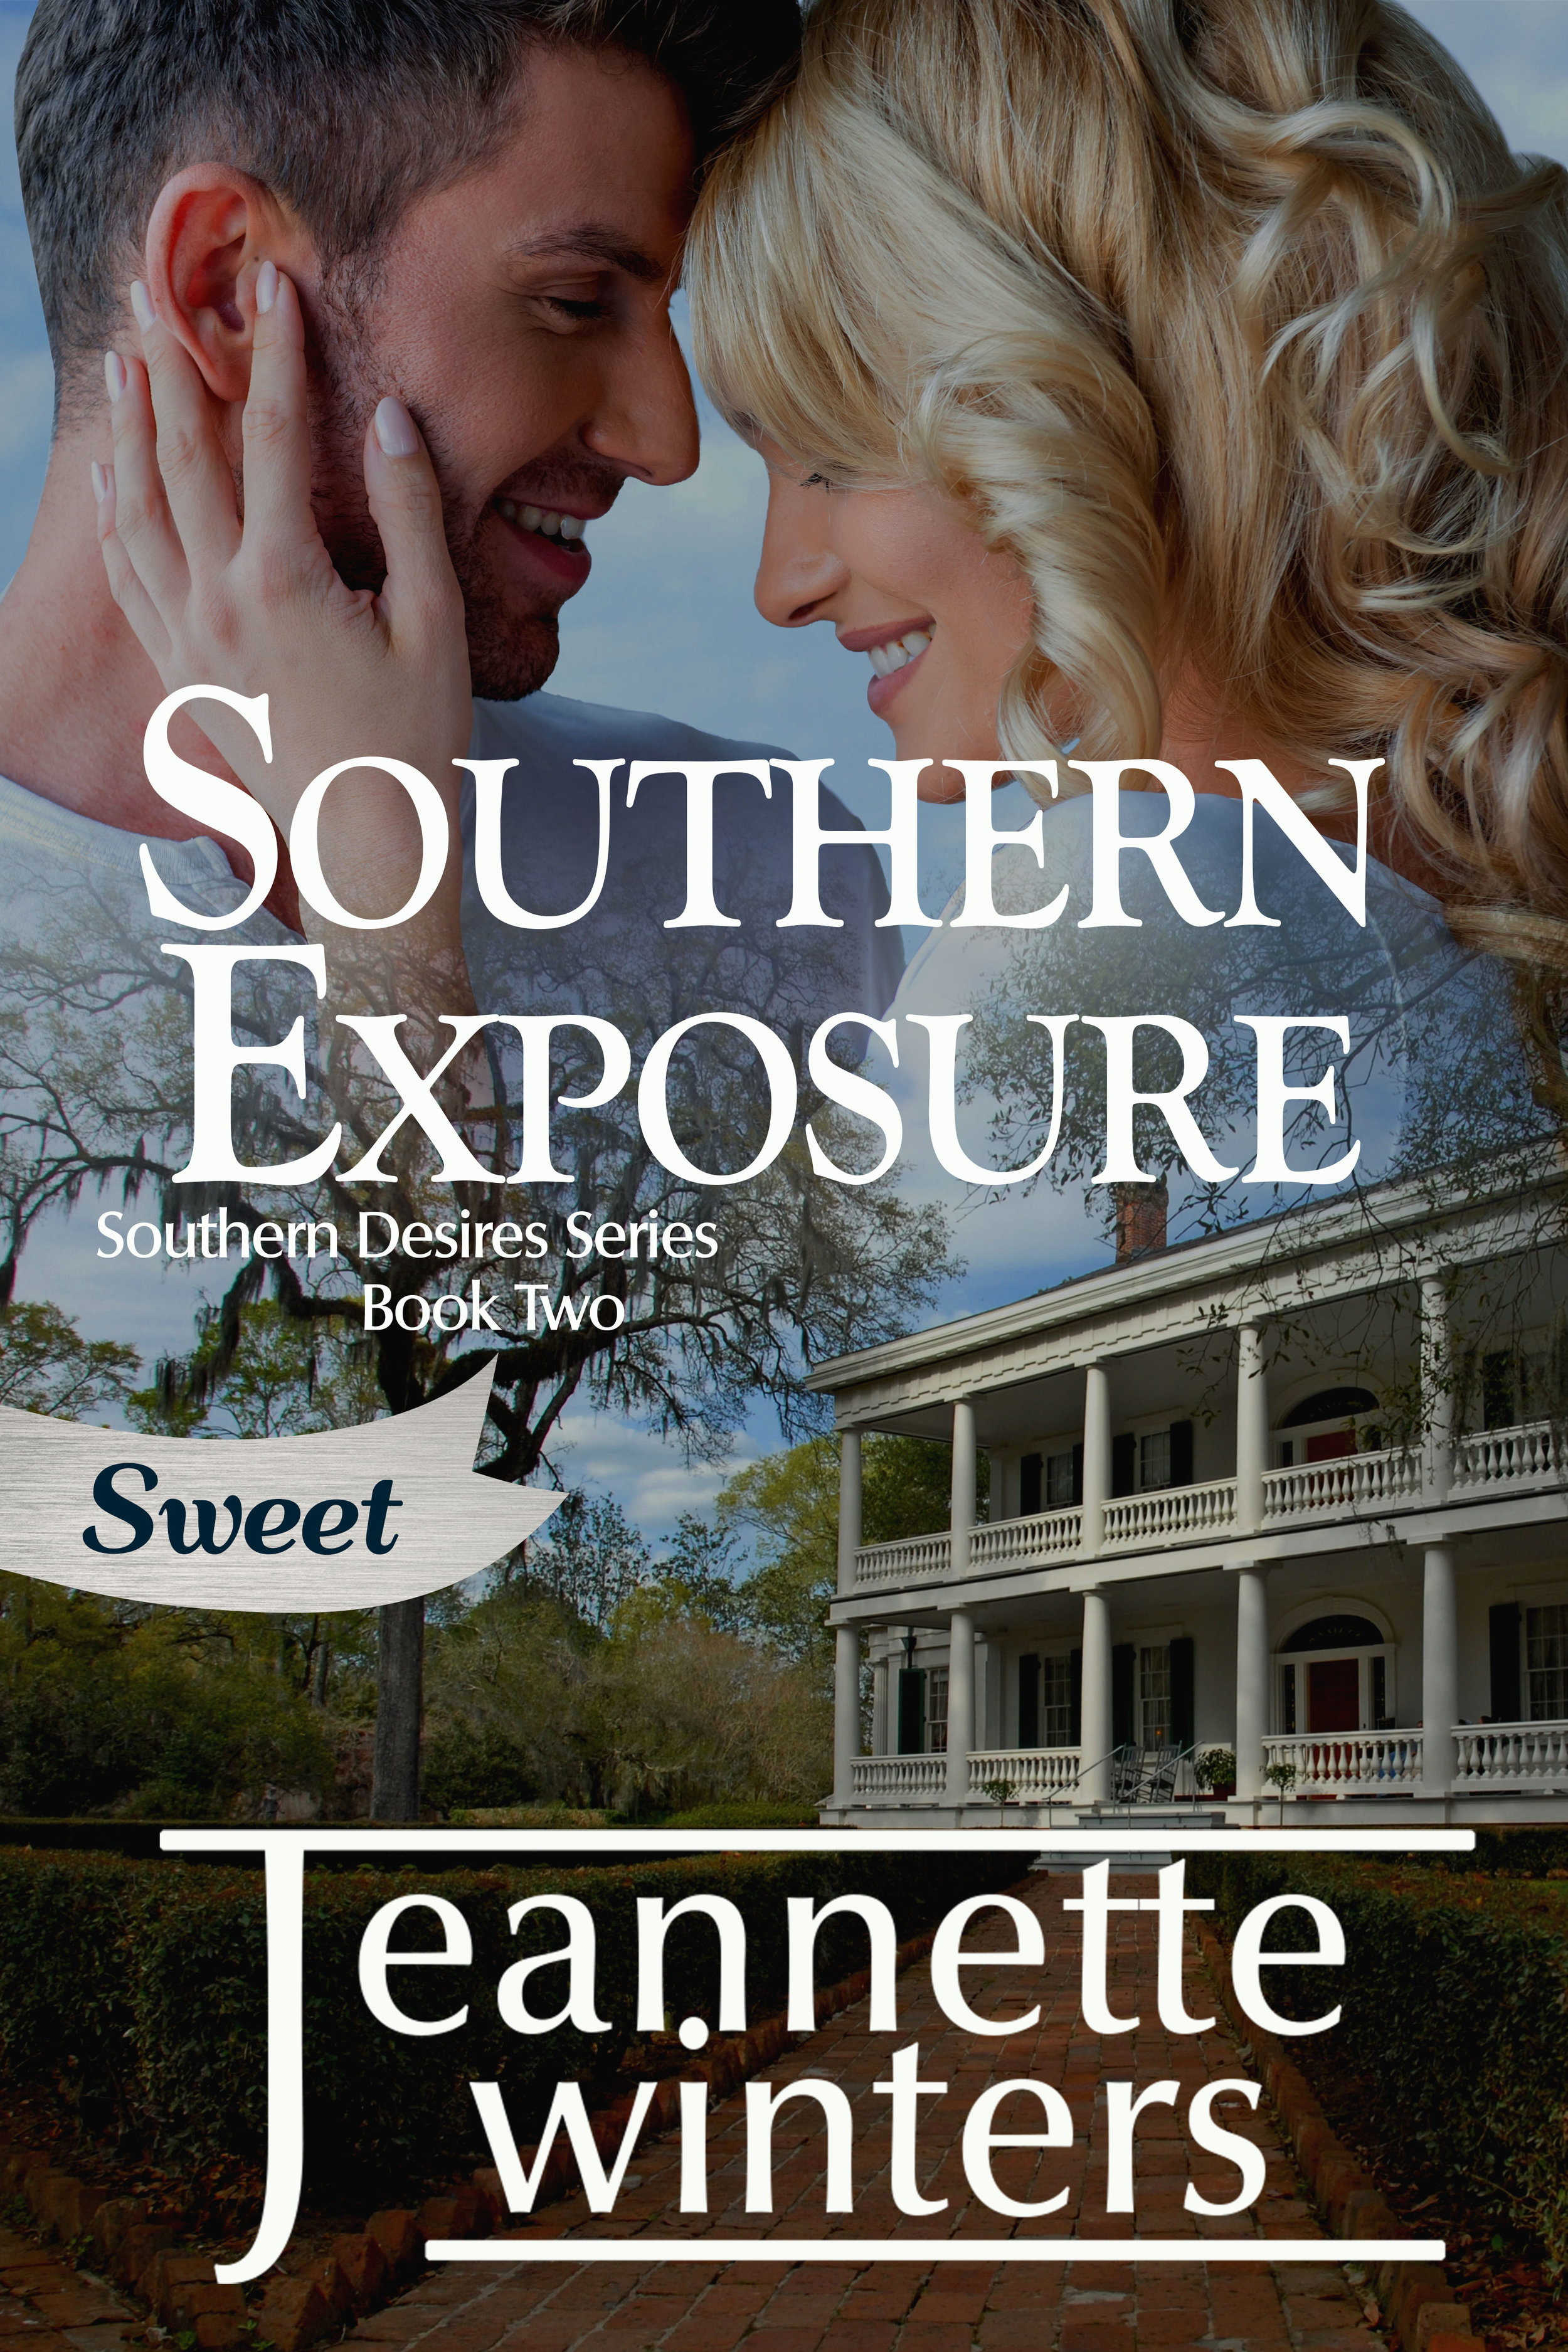 Enjoy this clean and wholesome version of Southern Exposure. Same story without the spice. The Sweet version still contains adult situations and relationships. If you prefer the hotter version be sure to download the original.  Mark Collins dedicates his life to serve and protect in the Navy. He excels at what he does but at the cost of being emotionally detached.  Hannah Entwistle left her small hometown to follow her dreams. Just when they are within reach, she had to return to care for her father.  Torn between honoring a promise to restore the family homestead and wanting to follow her heart, Hannah finds herself in a place she never wanted to be: lost and alone in Savannah.  Mark wasn't expecting complications when he chose this job on the side, but her southern charm storms his defenses. When her life is threatened, will duty trump love?